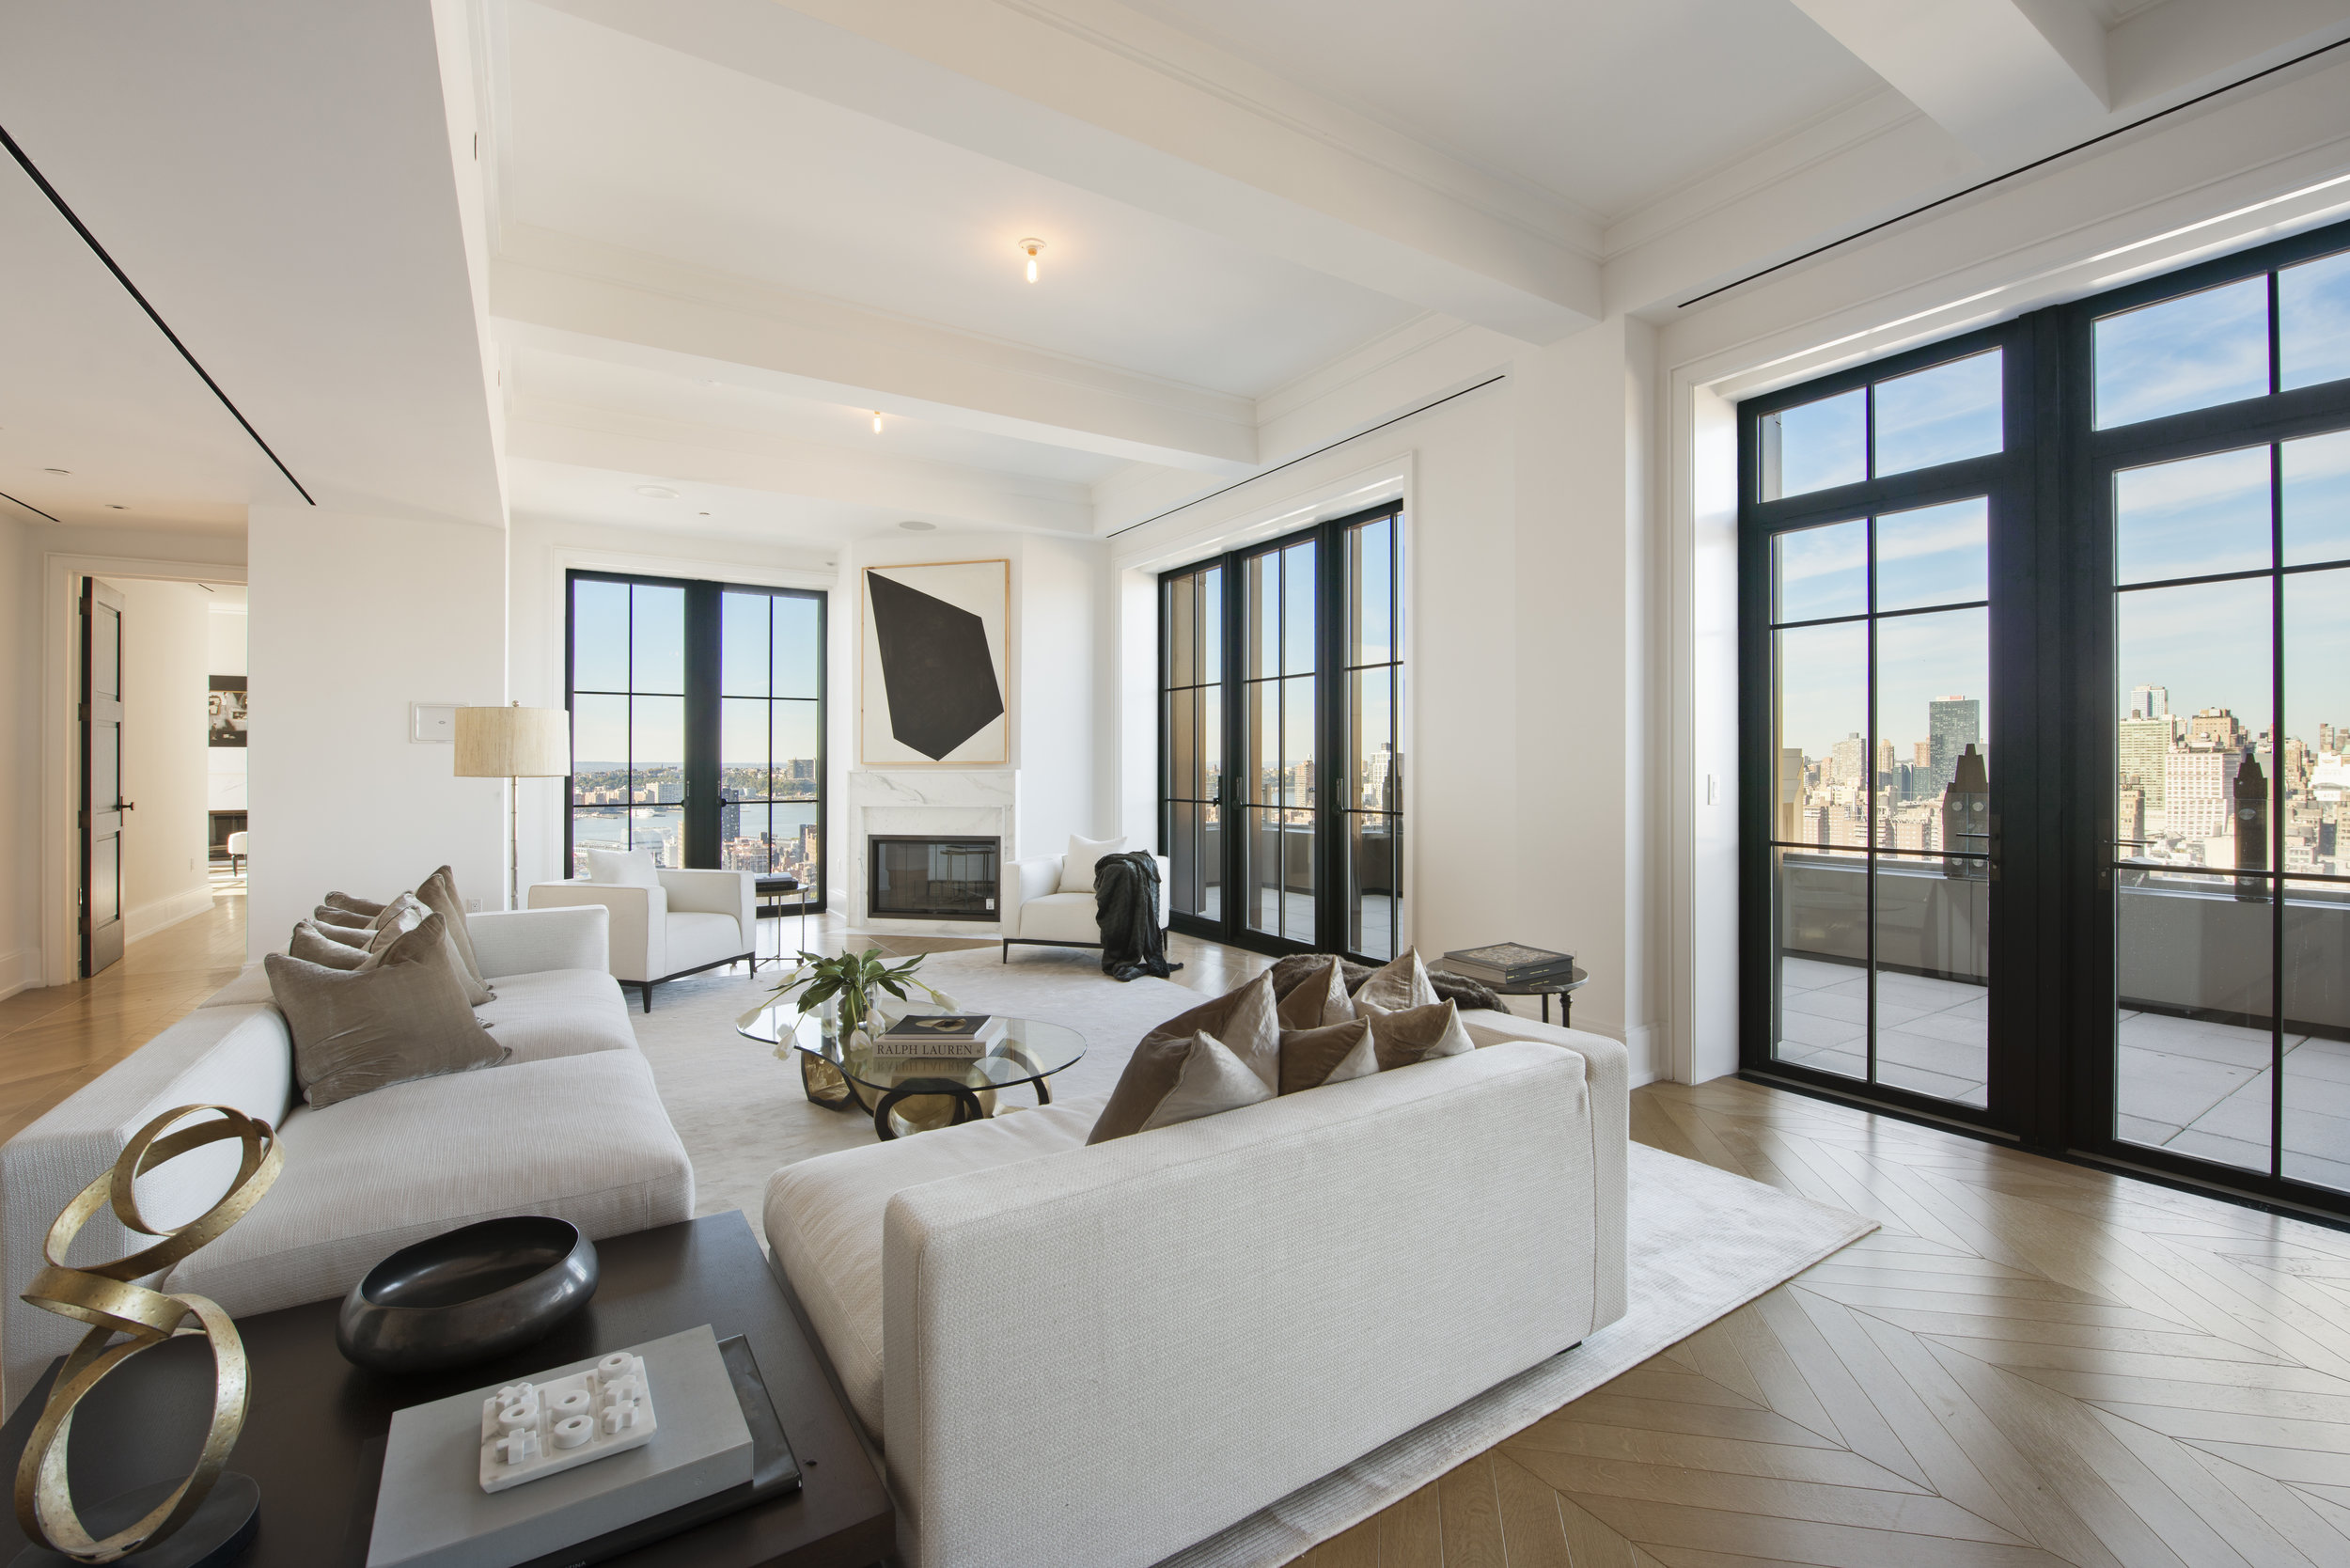 Walker Tower Penthouse - SOLD! - July 1, 2018After being on and off the market for two years, the full-floor Walker Tower Penthouse, equipped with Skyline Series 1200 Tilt & Turns, has finally sold!Click on the photo for the full scoop.{ Via curbed.com }